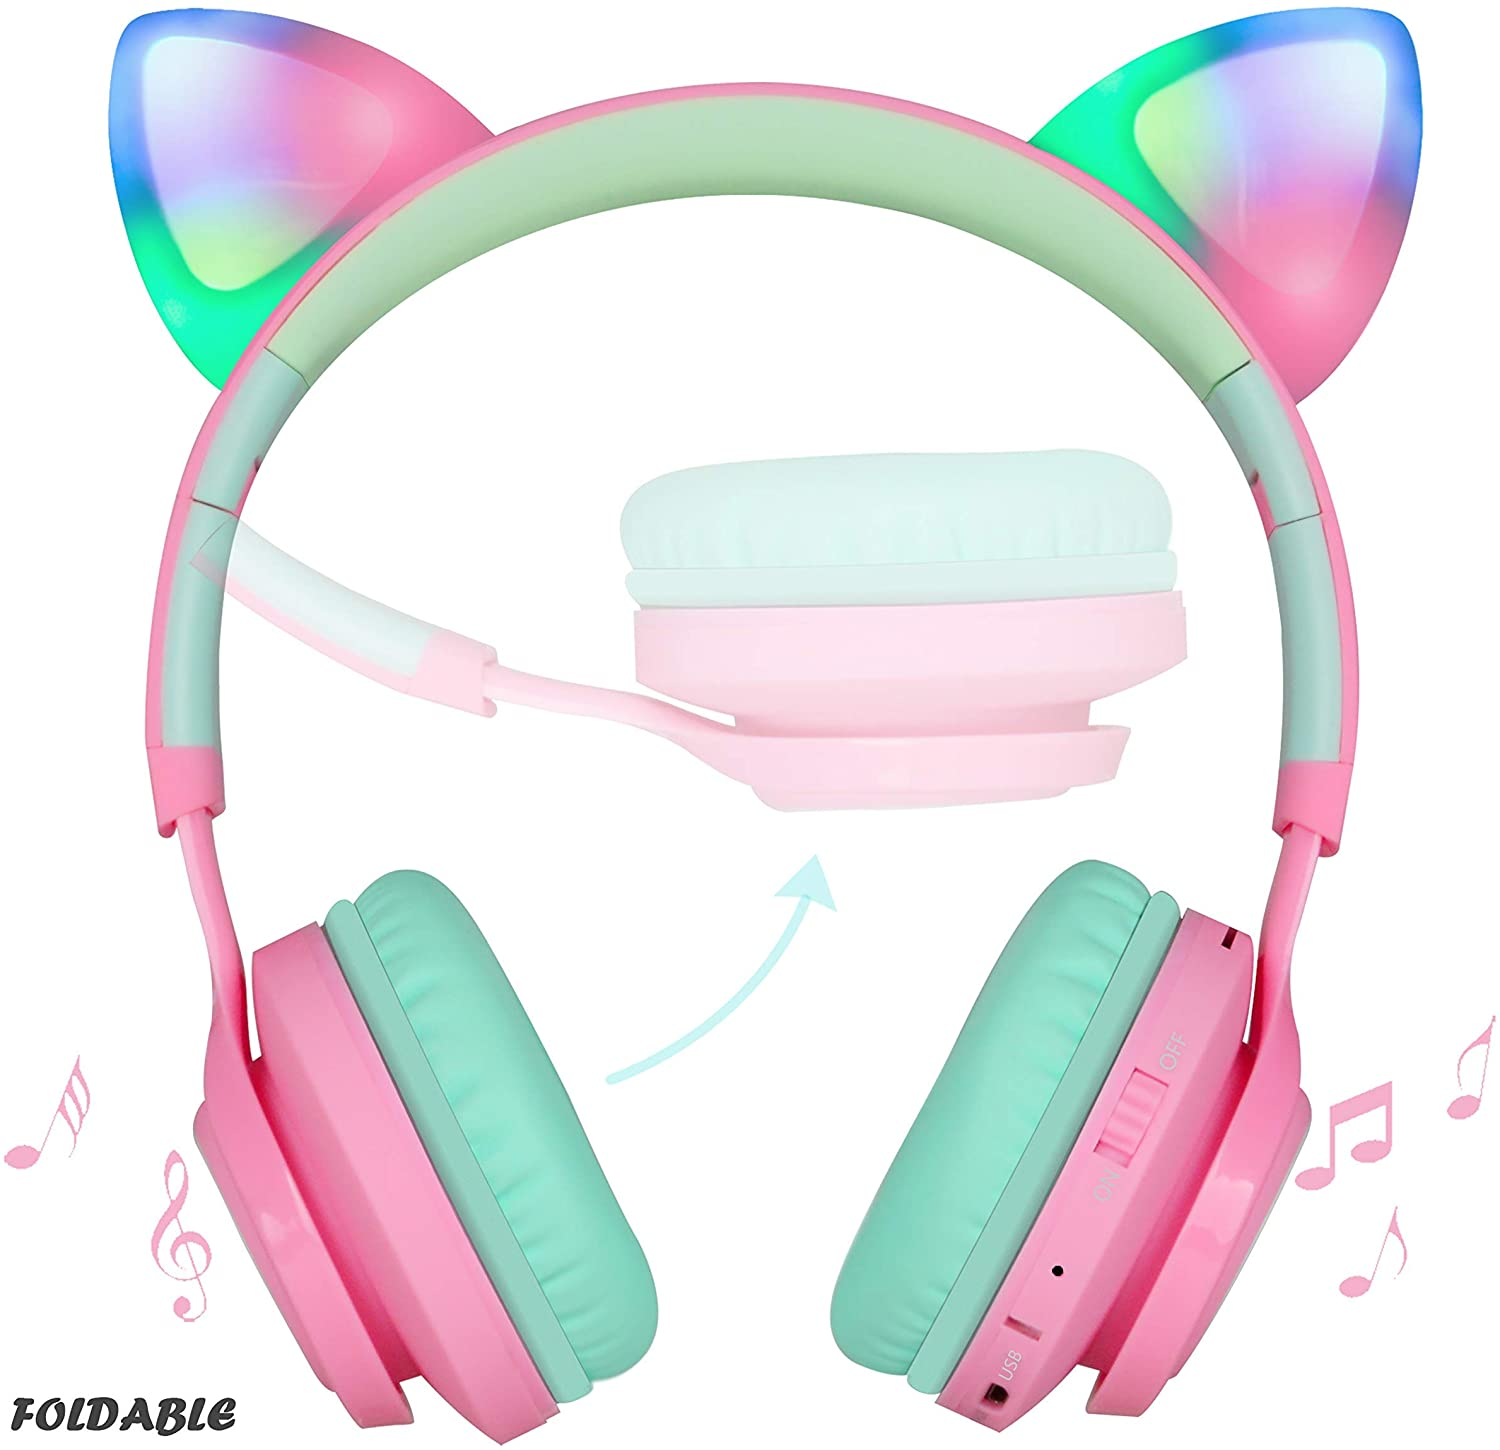 Riwbox Bluetooth Headphones, Riwbox CT-7 Cat Ear LED Light Up Wireless Foldable Headphones Over Ear with Microphone and Volume Control for iPhone/iPad/Smartphones/Laptop/PC/TV (Pink&Green) (Renewed)